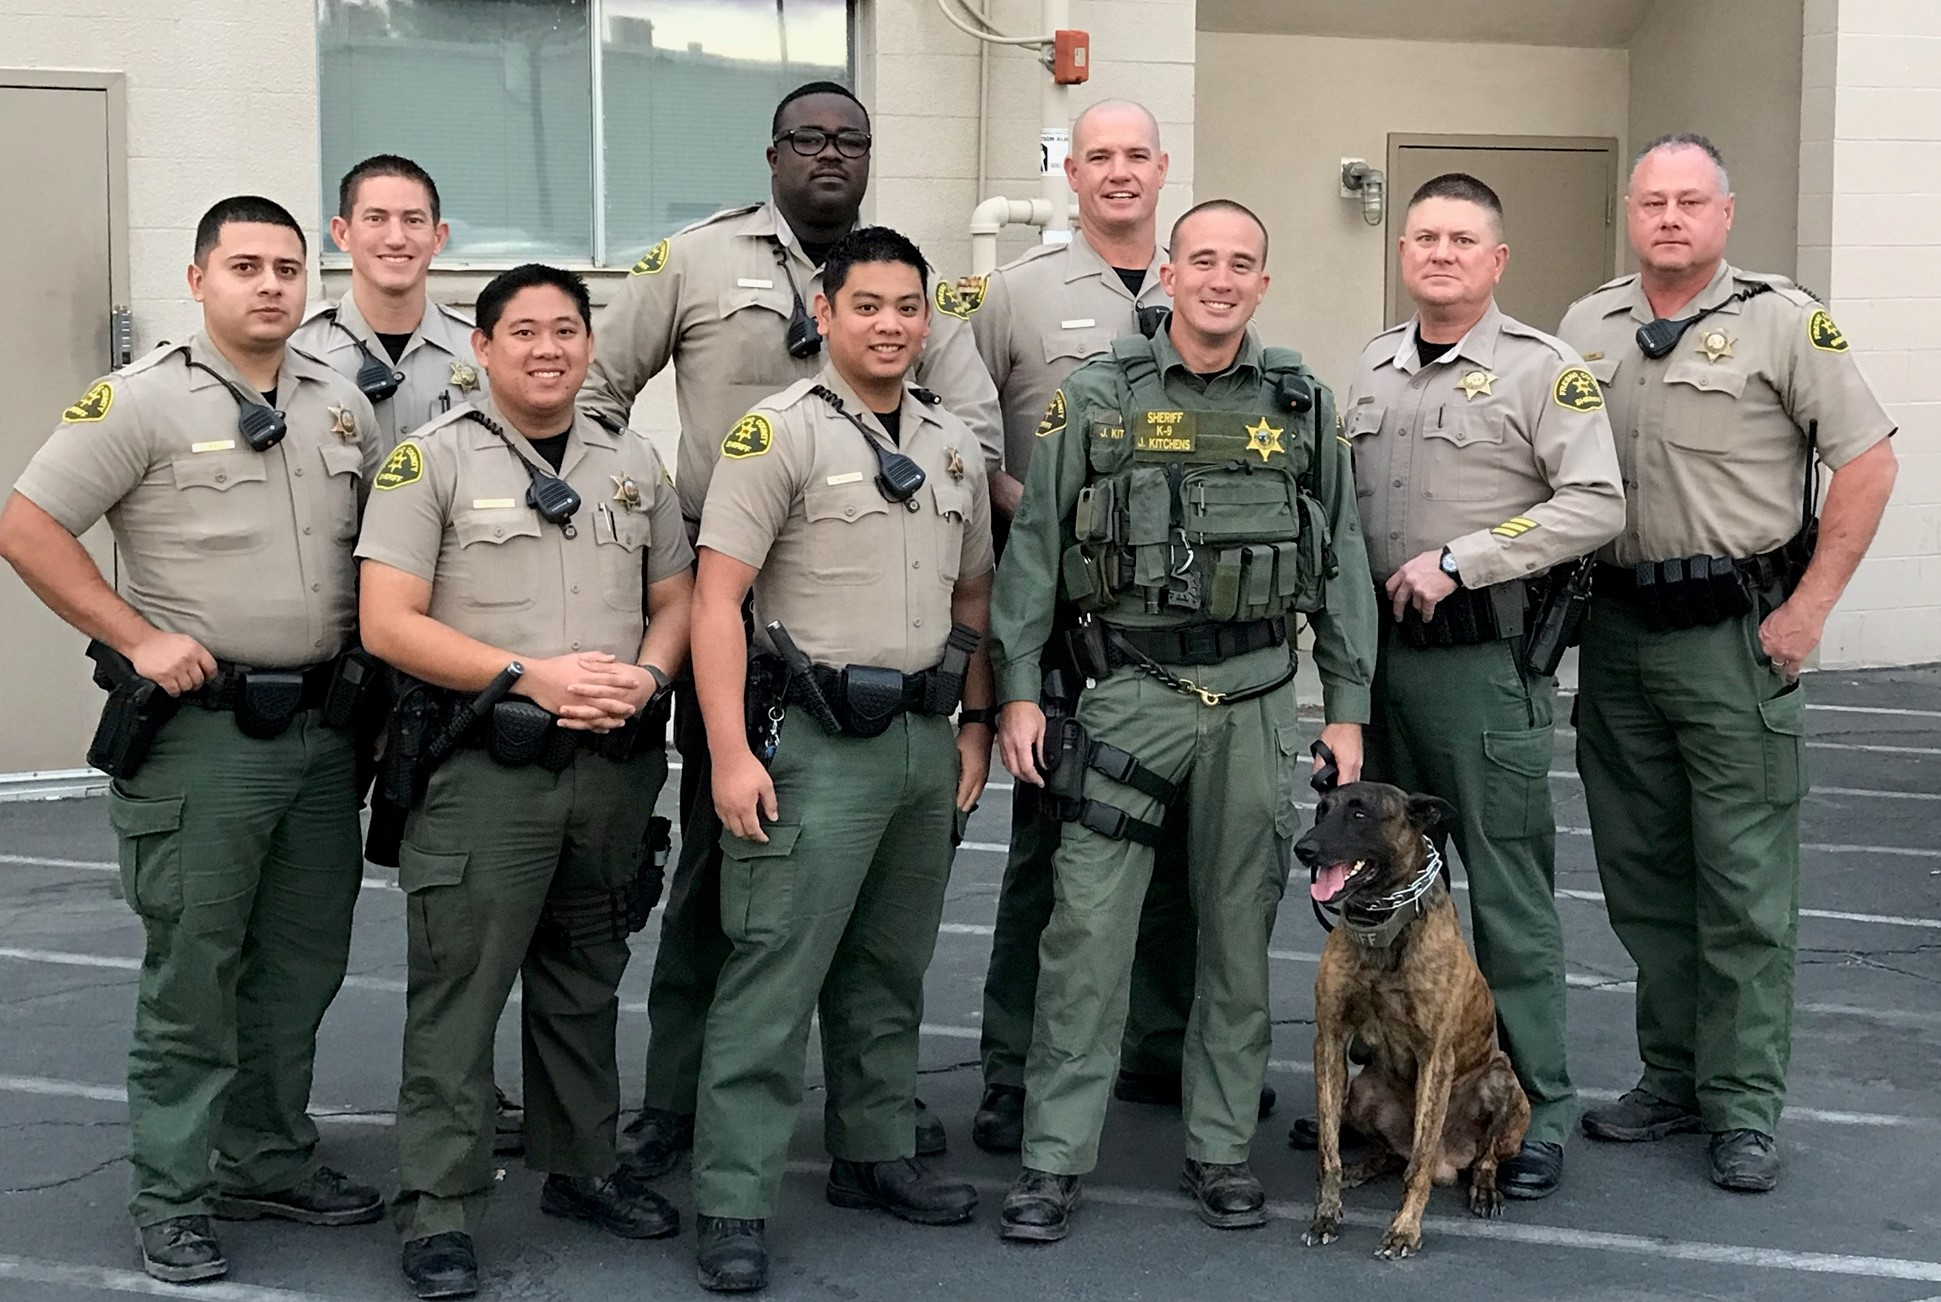 Sheriff Department with service dog